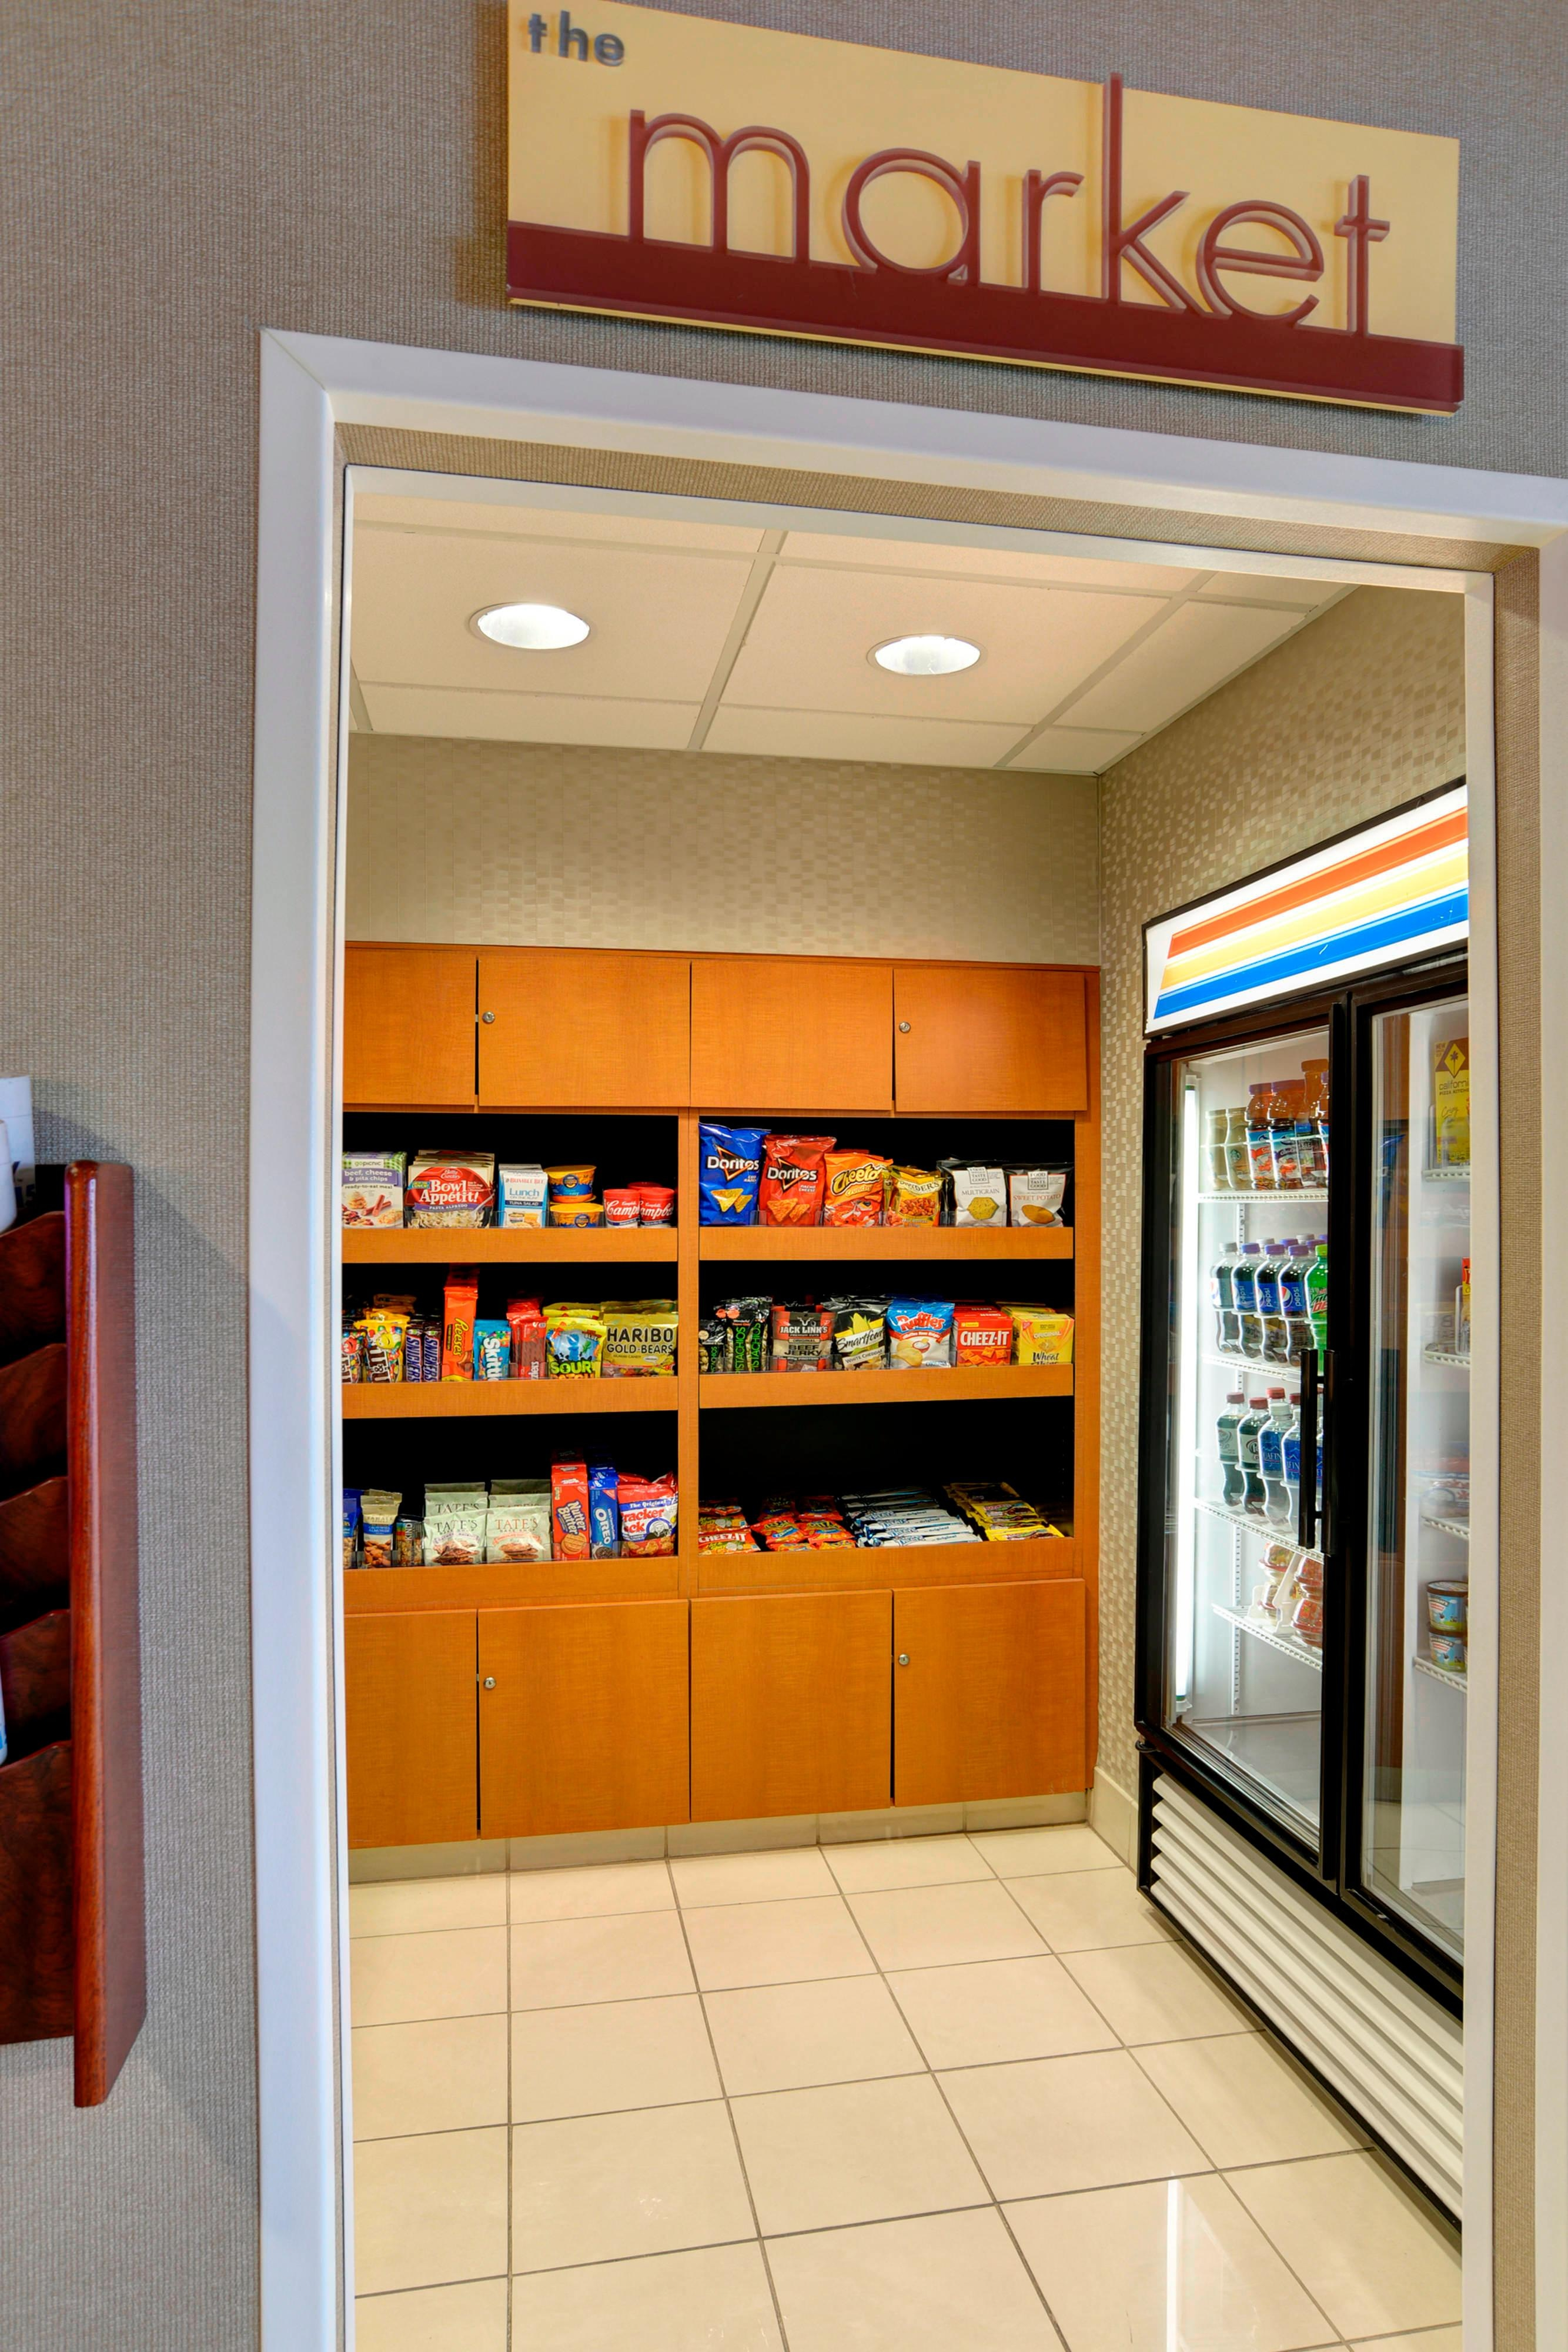 SpringHill Suites Terre Haute -The Market Convenience Shop